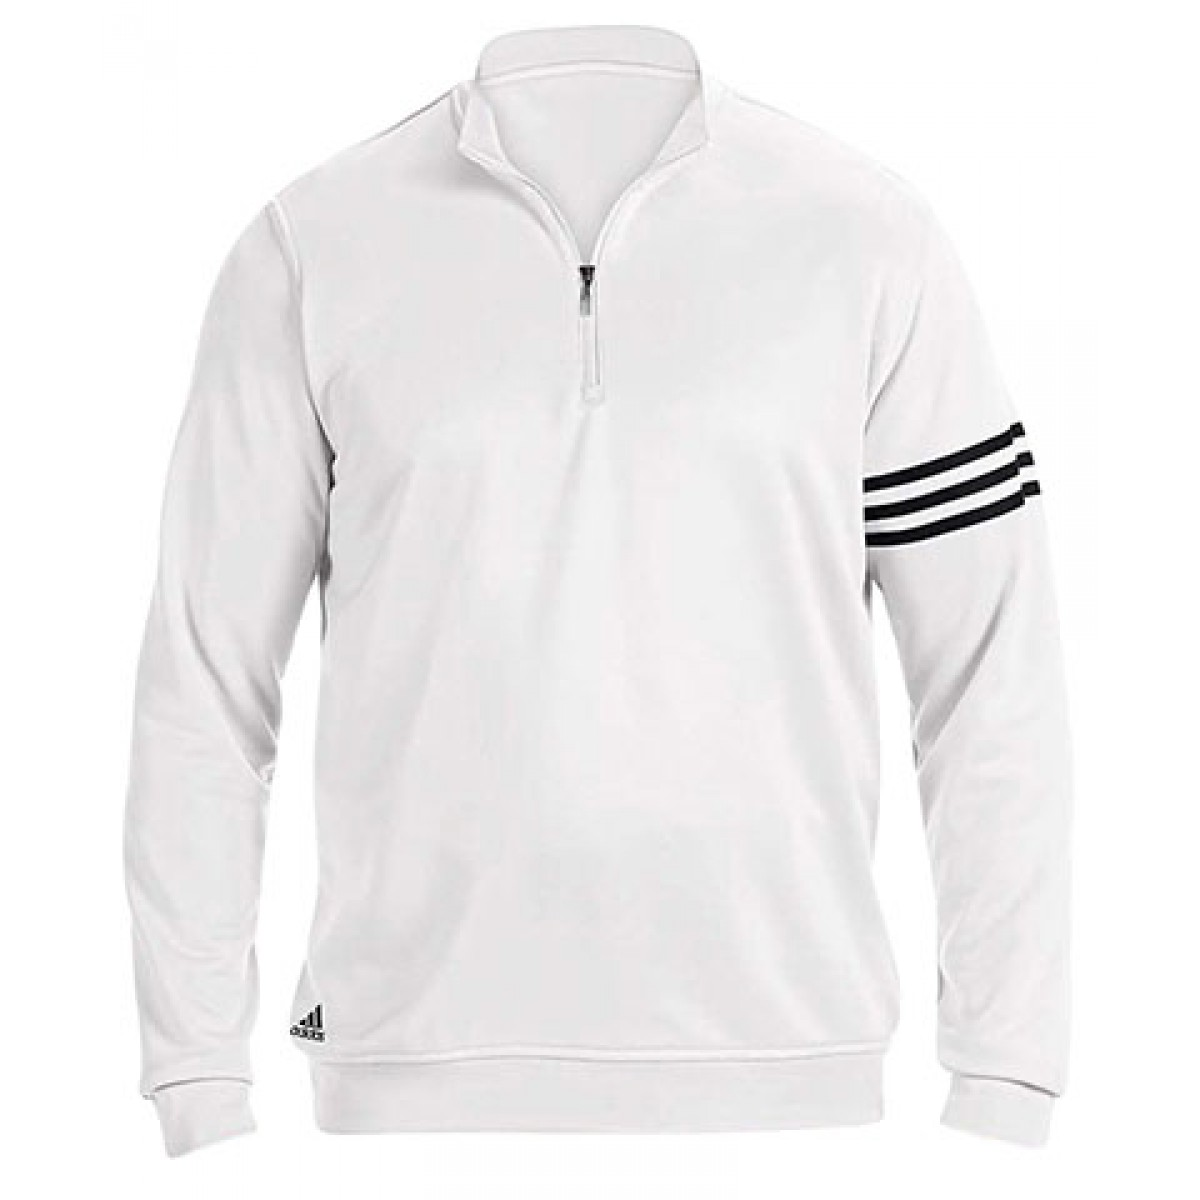 Adidas Men's 3-Stripes Pullover-White-3XL